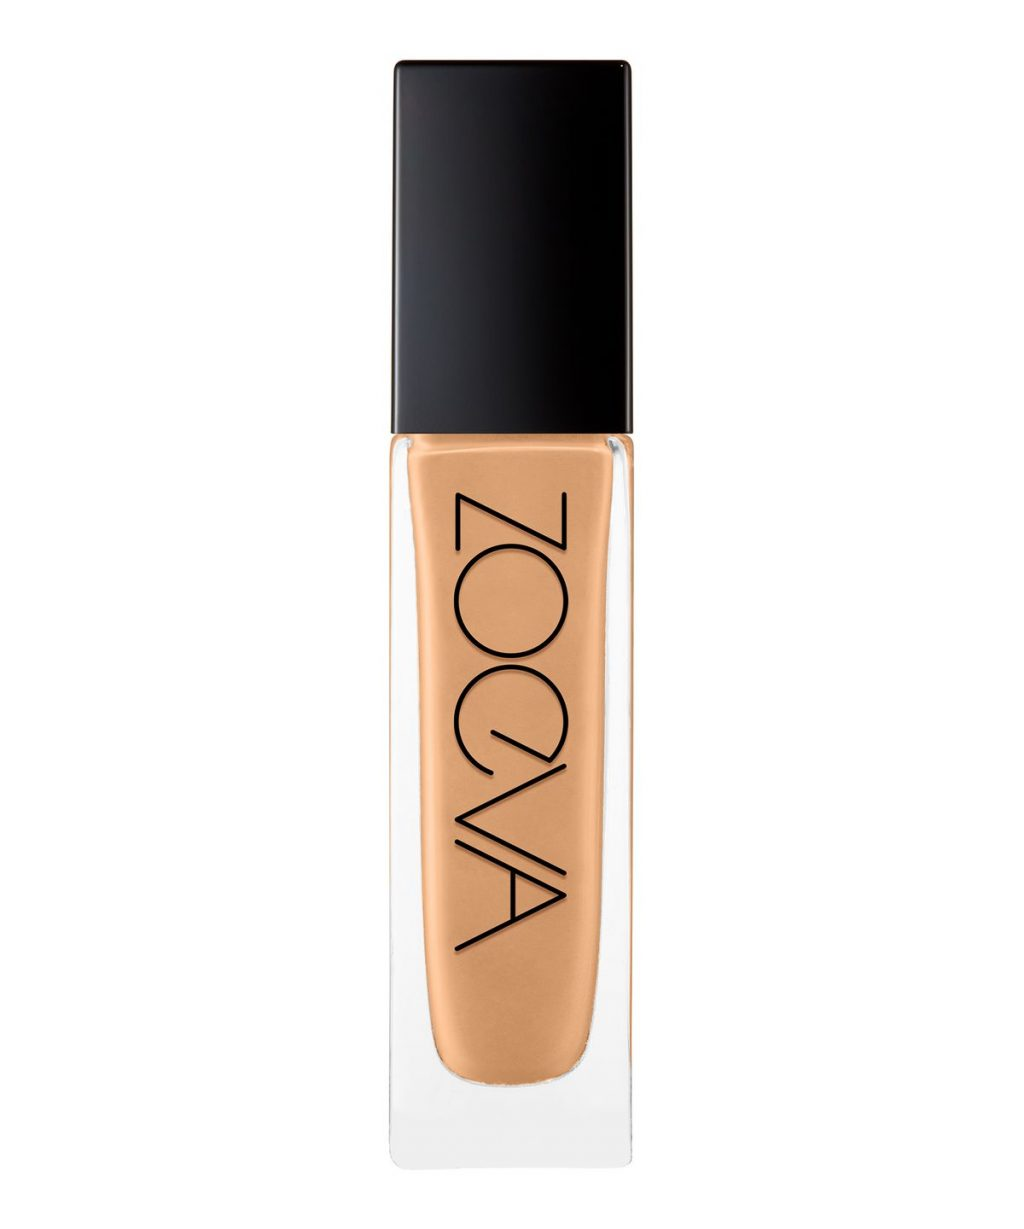 All About That Base: 12 New Foundations Our Beauty Editor Swears By